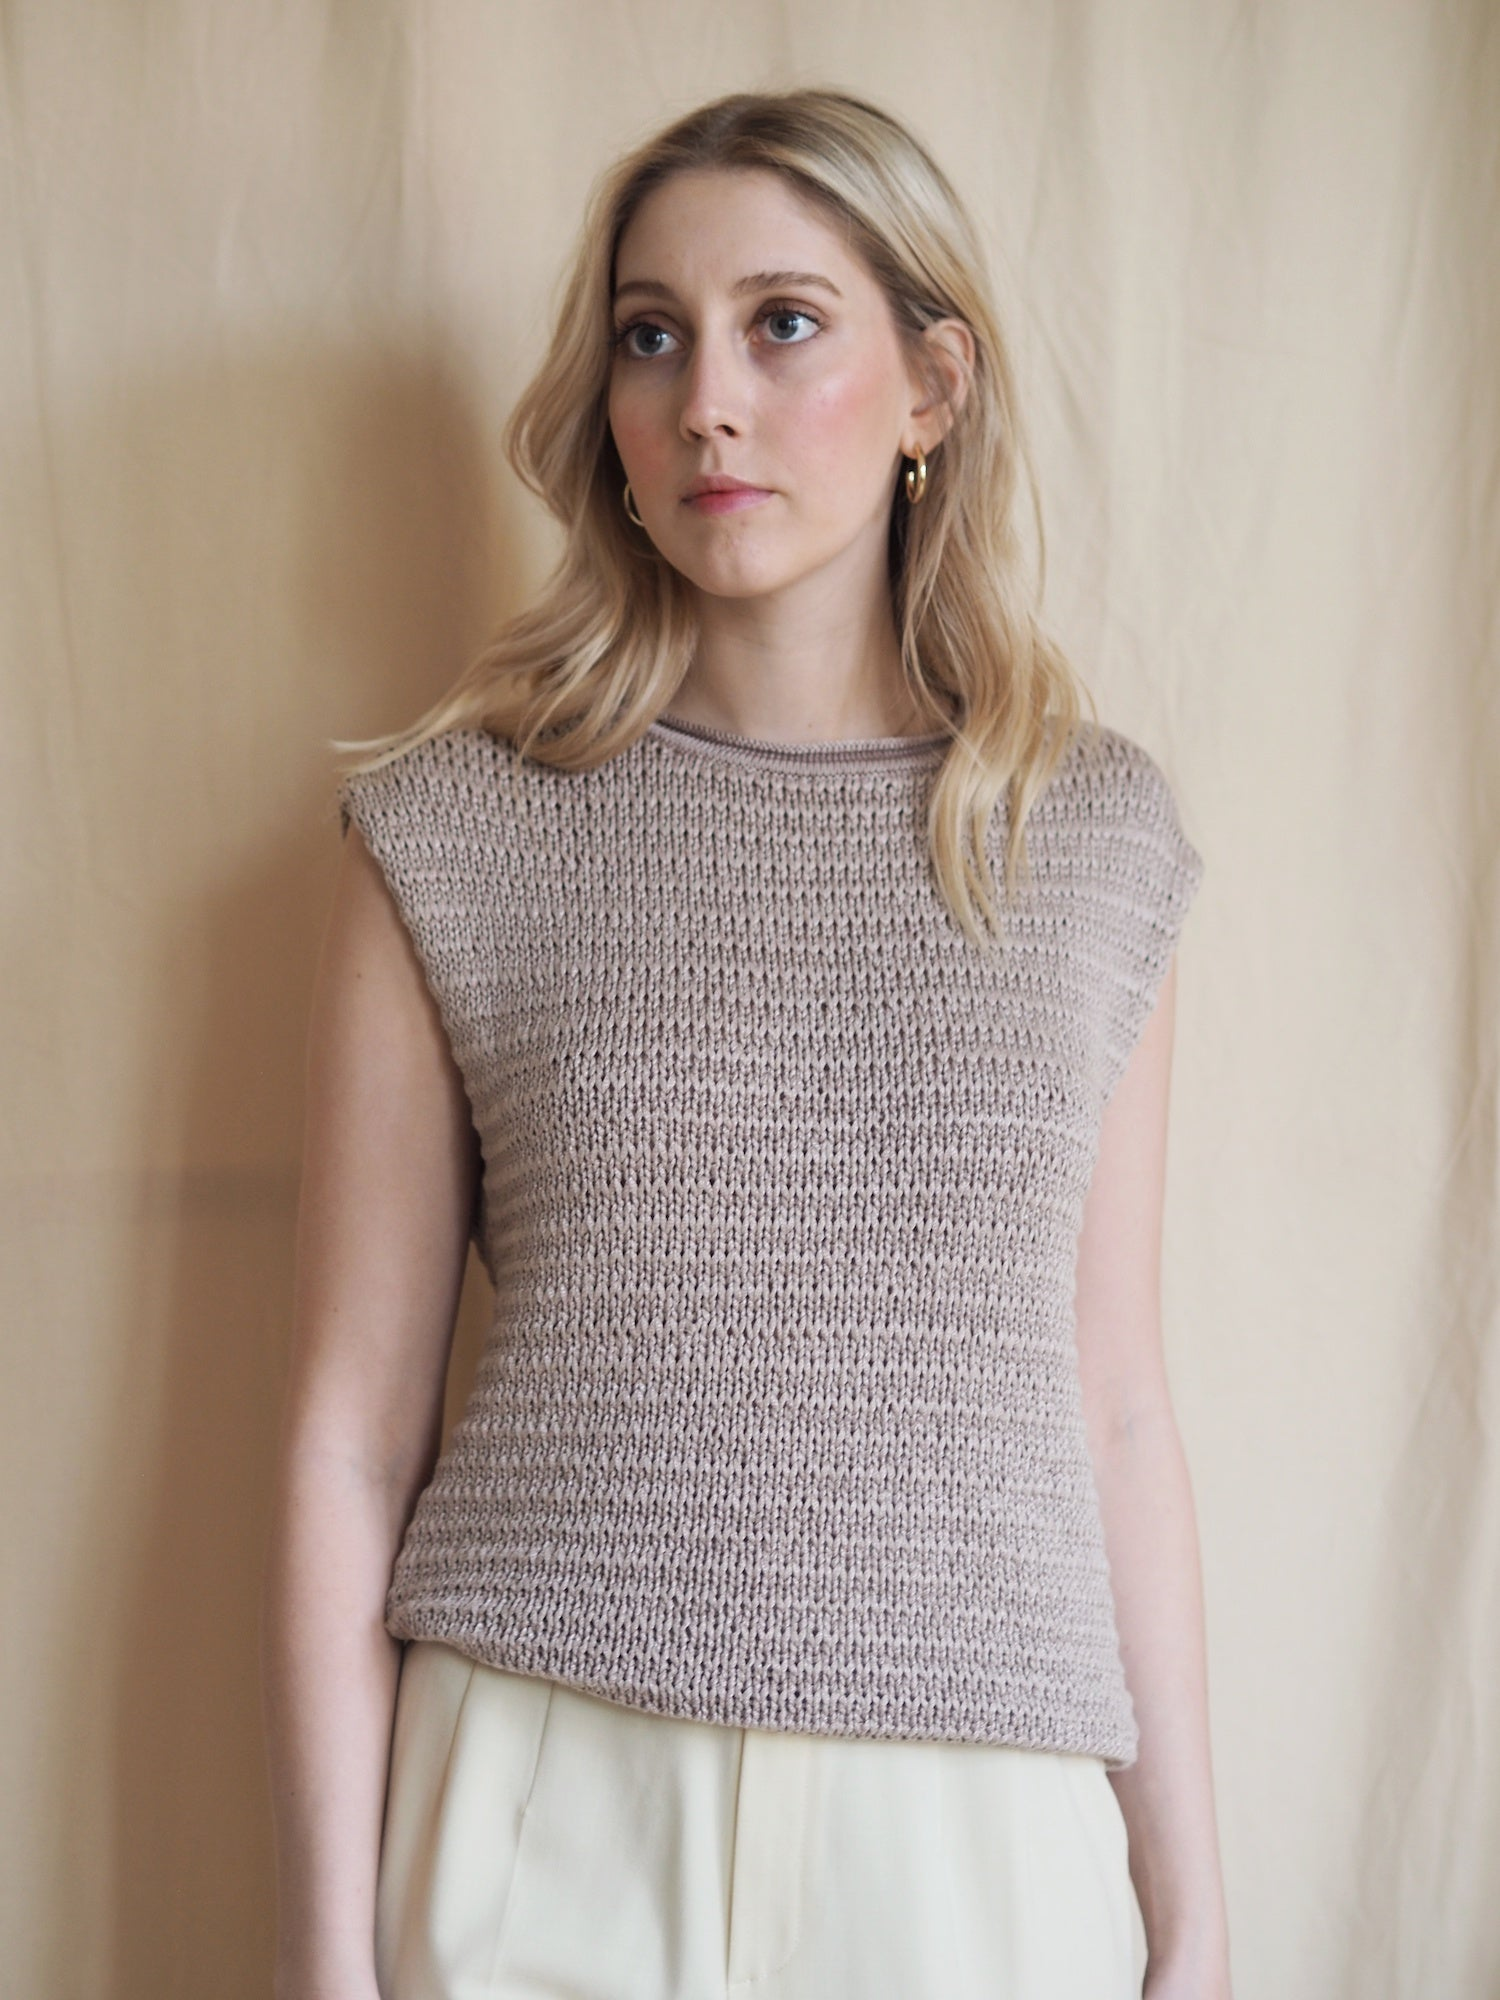 Filippa K. Sleeveless Knit